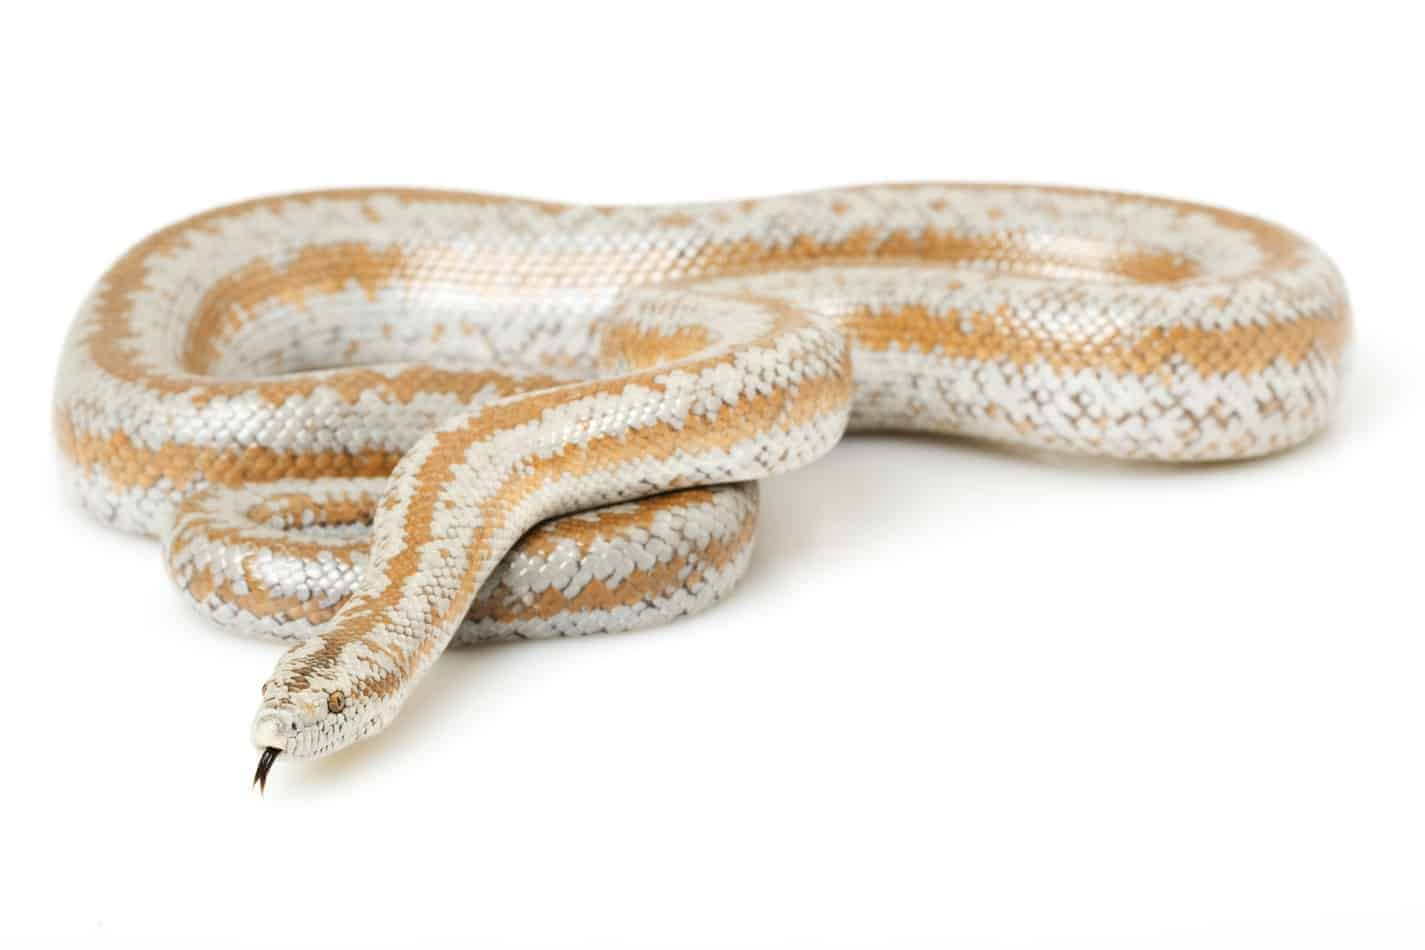 What's the Temperament of a Rosy Boa Snake?